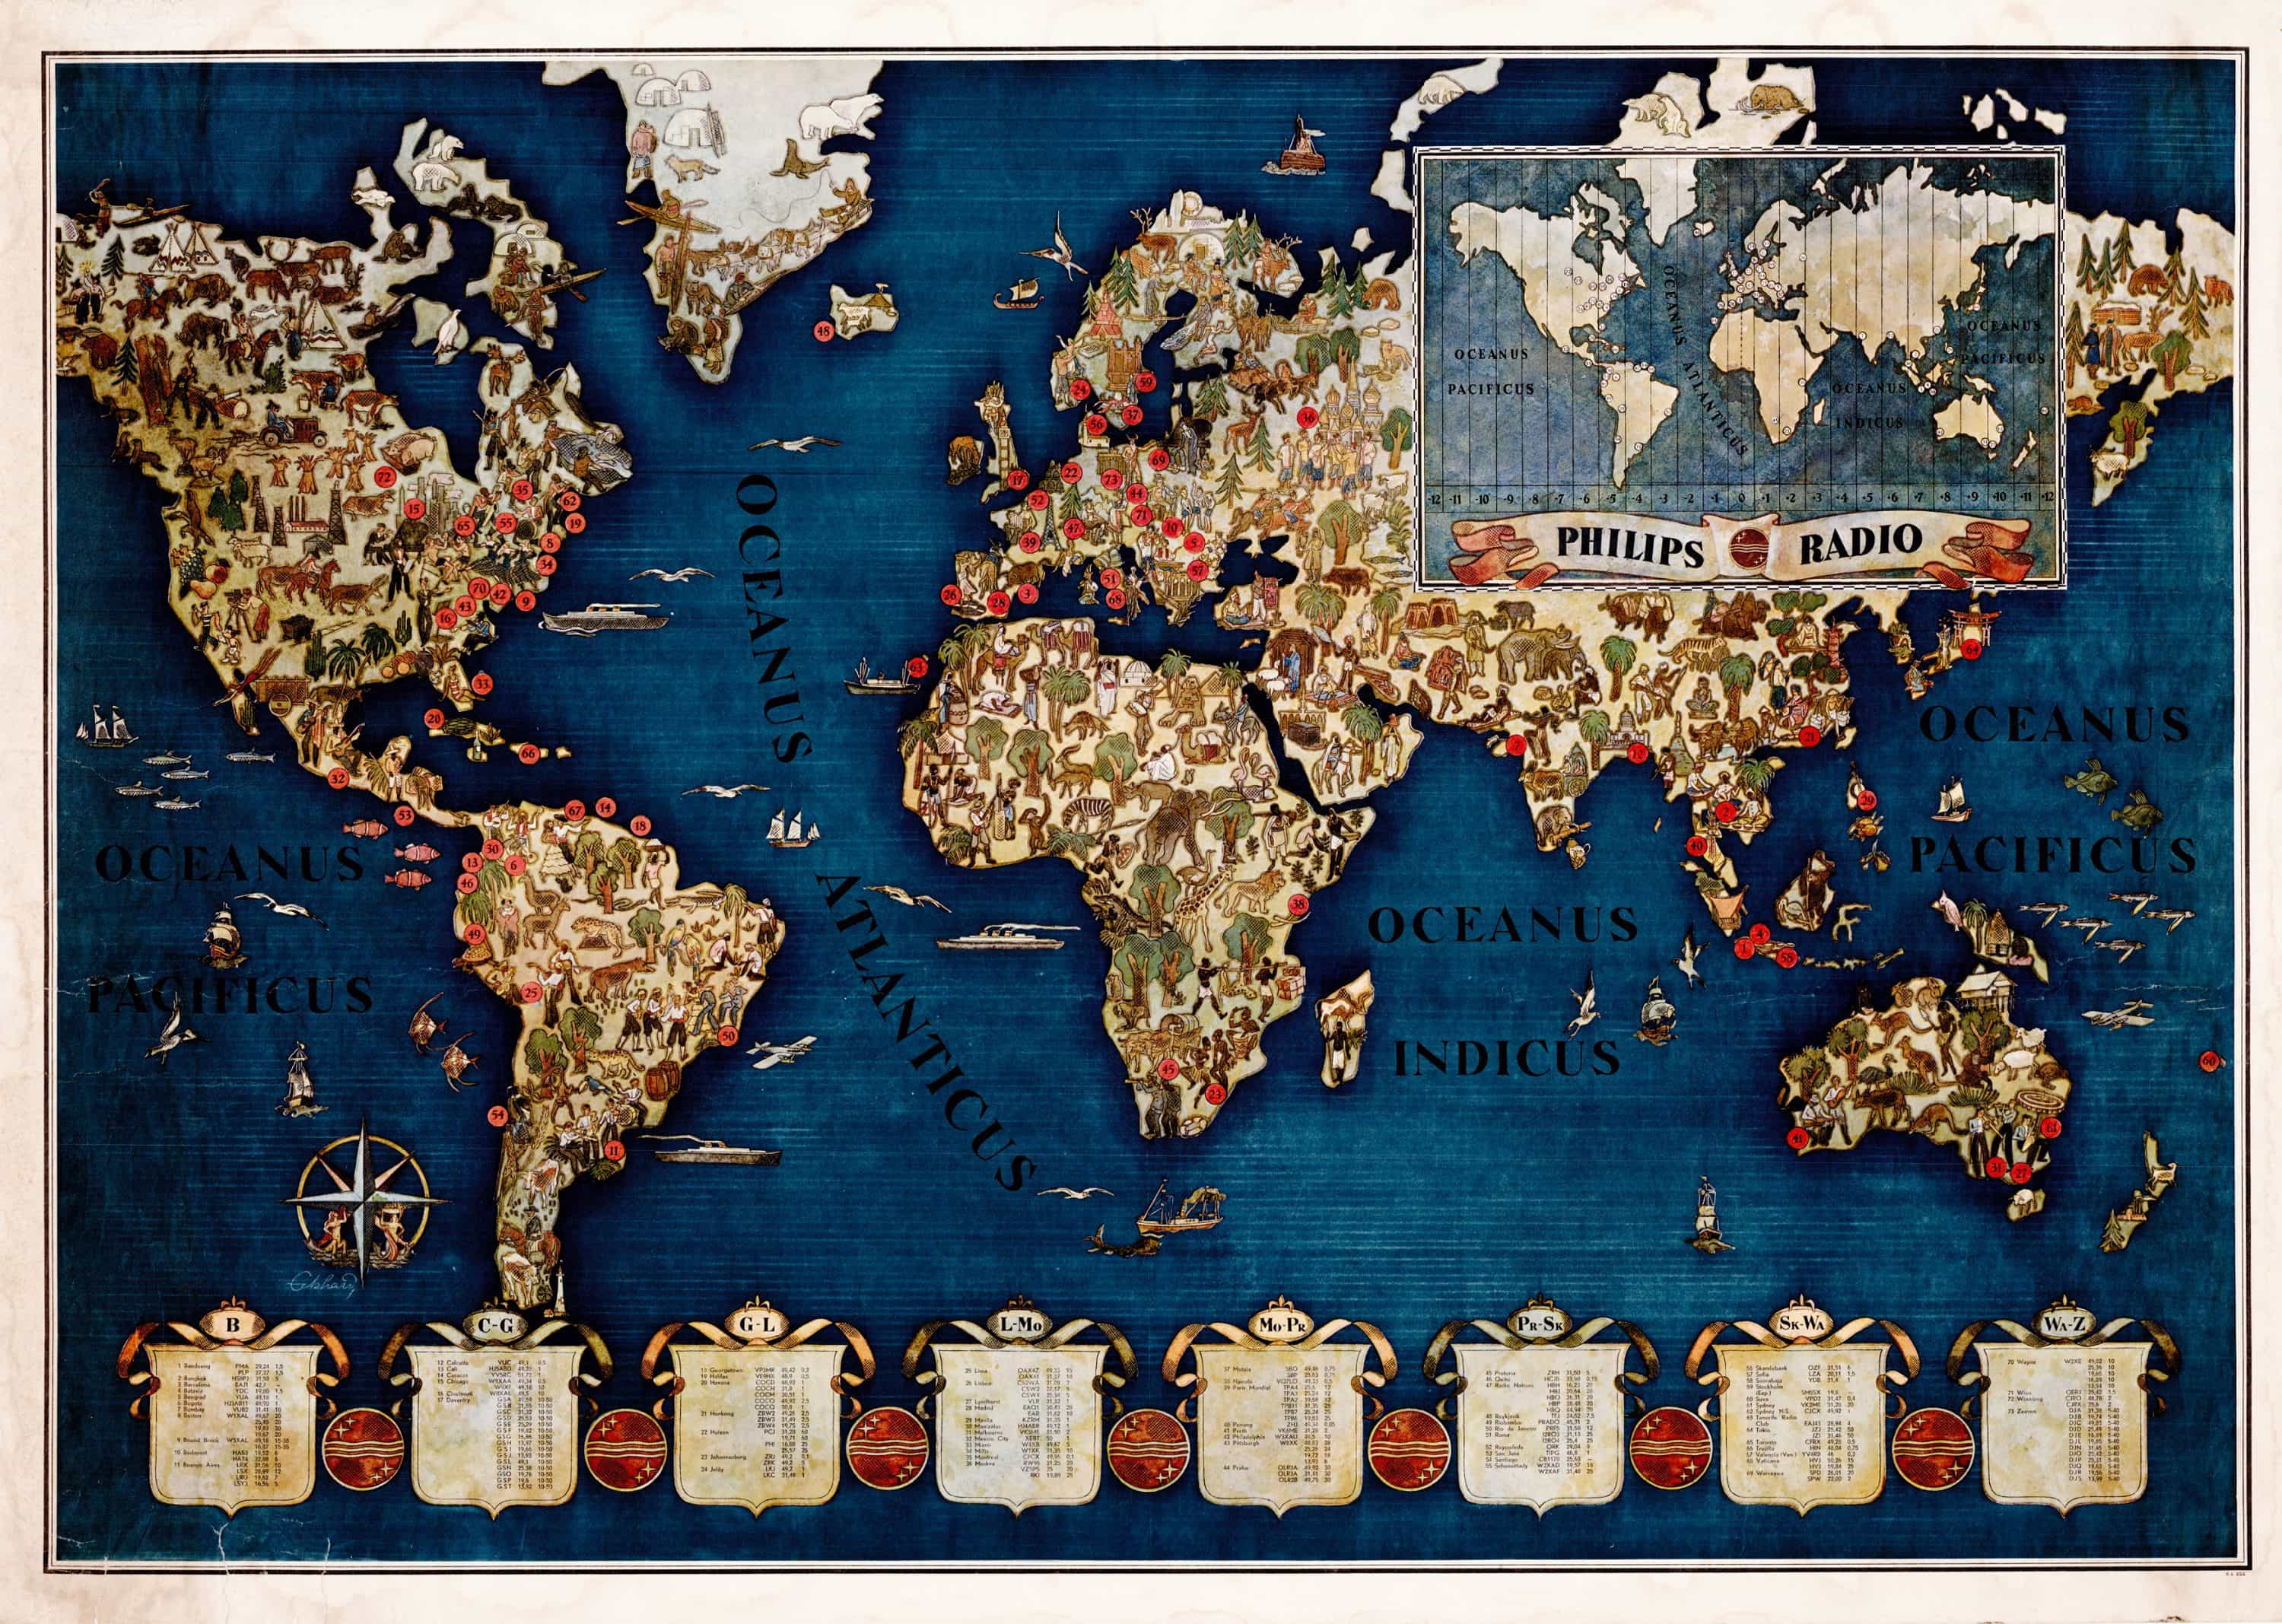 Spectacular philips pictorial map of the global shortwave radio spectacular philips pictorial map of the global shortwave radio network gumiabroncs Gallery